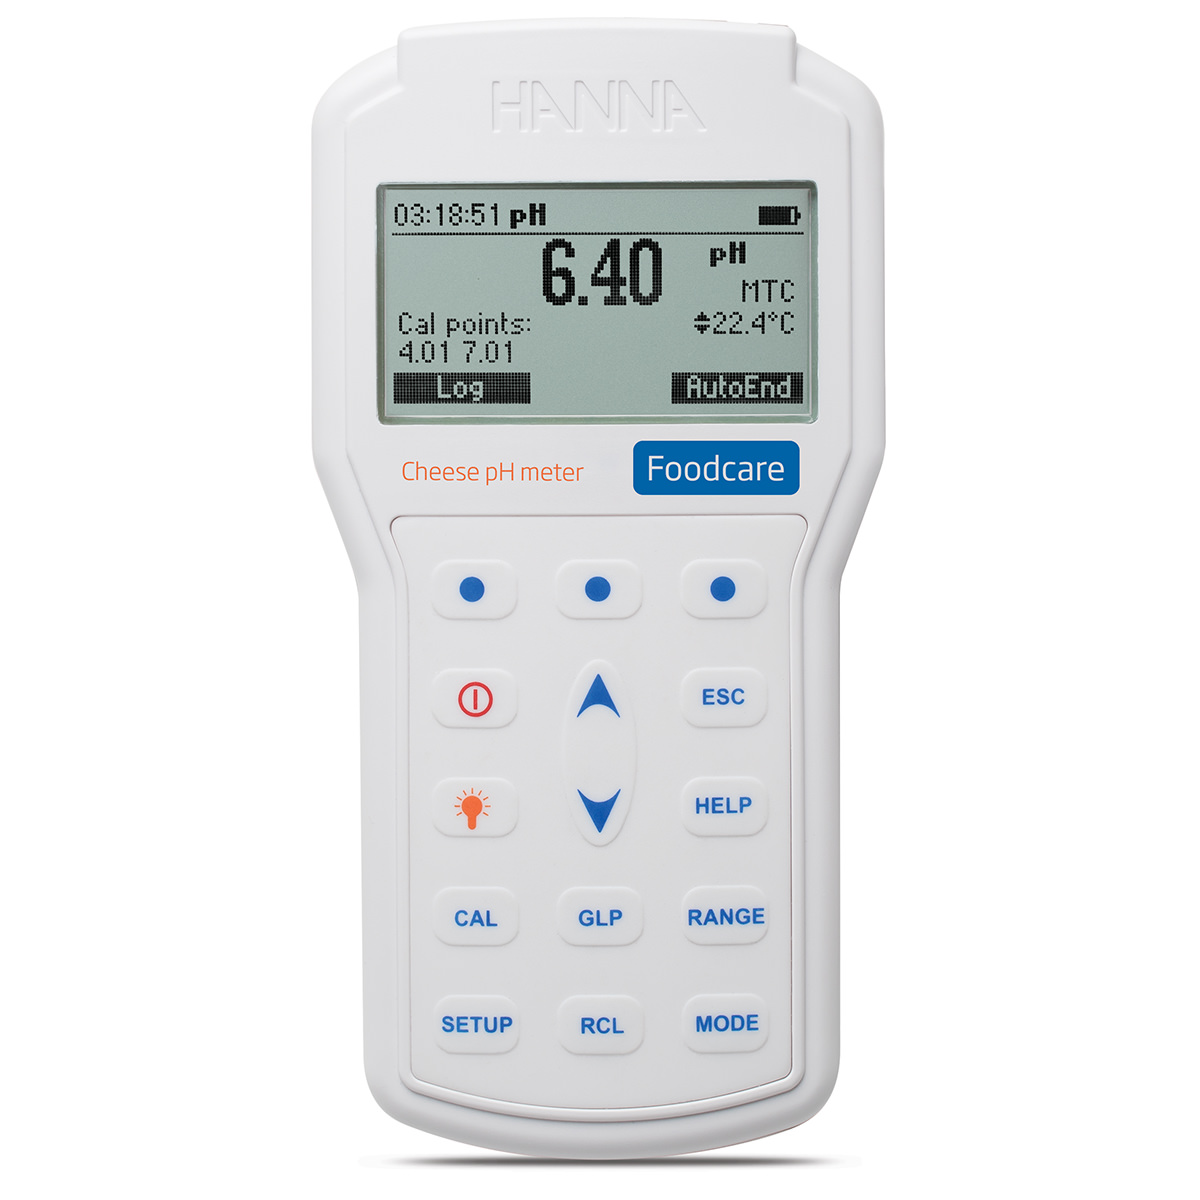 Professional Portable Cheese pH Meter - HI98165